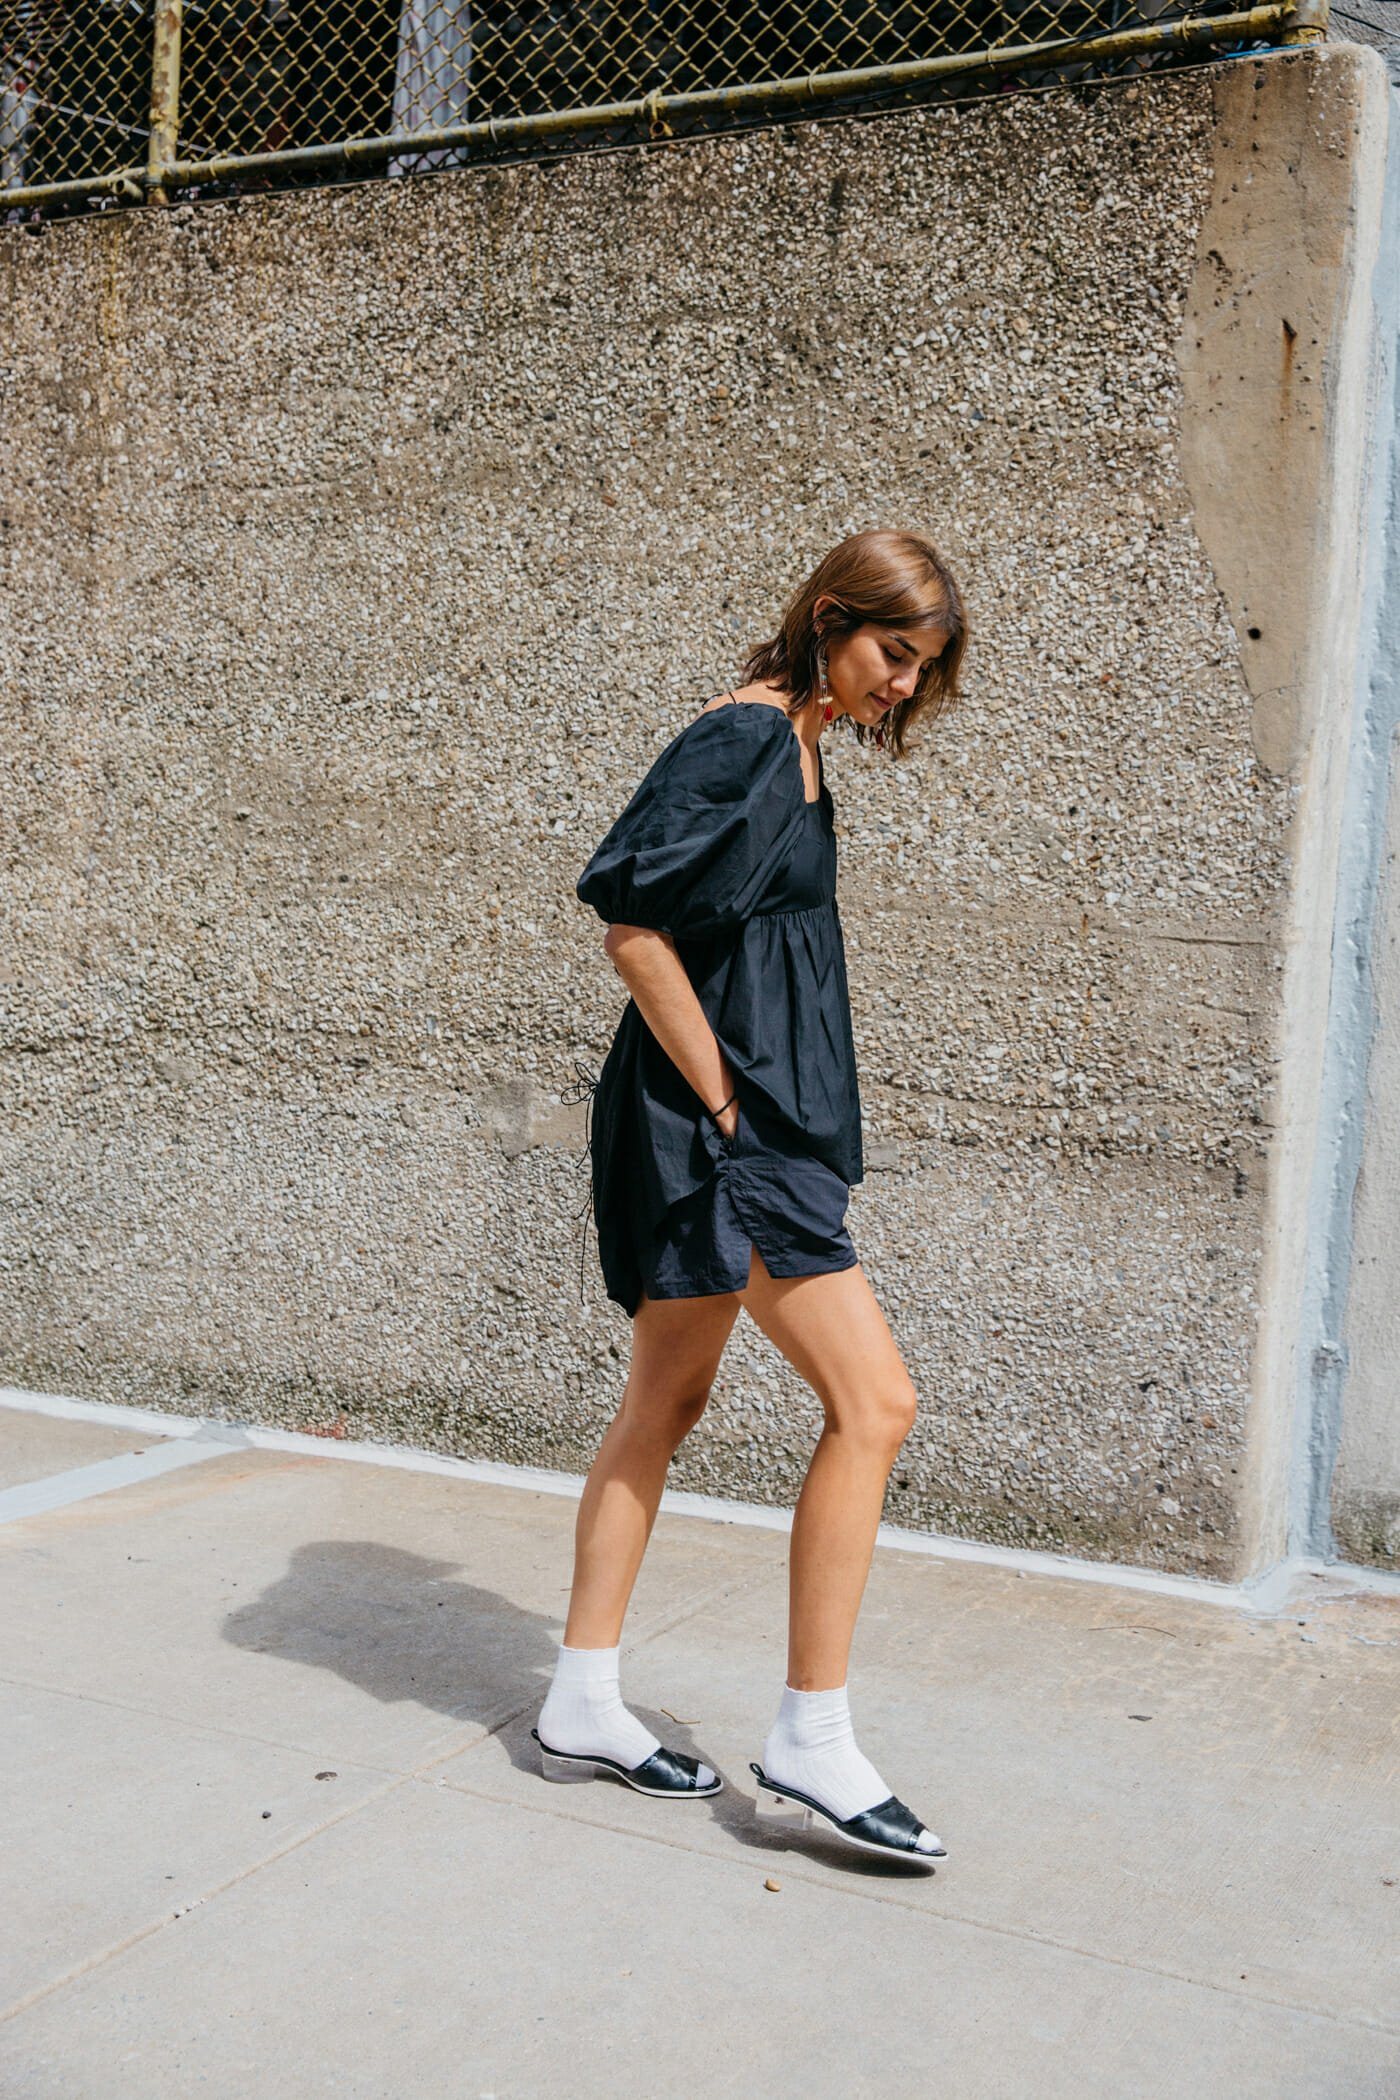 How To Wear Socks And Sandals This Summer And Three Great Ideas